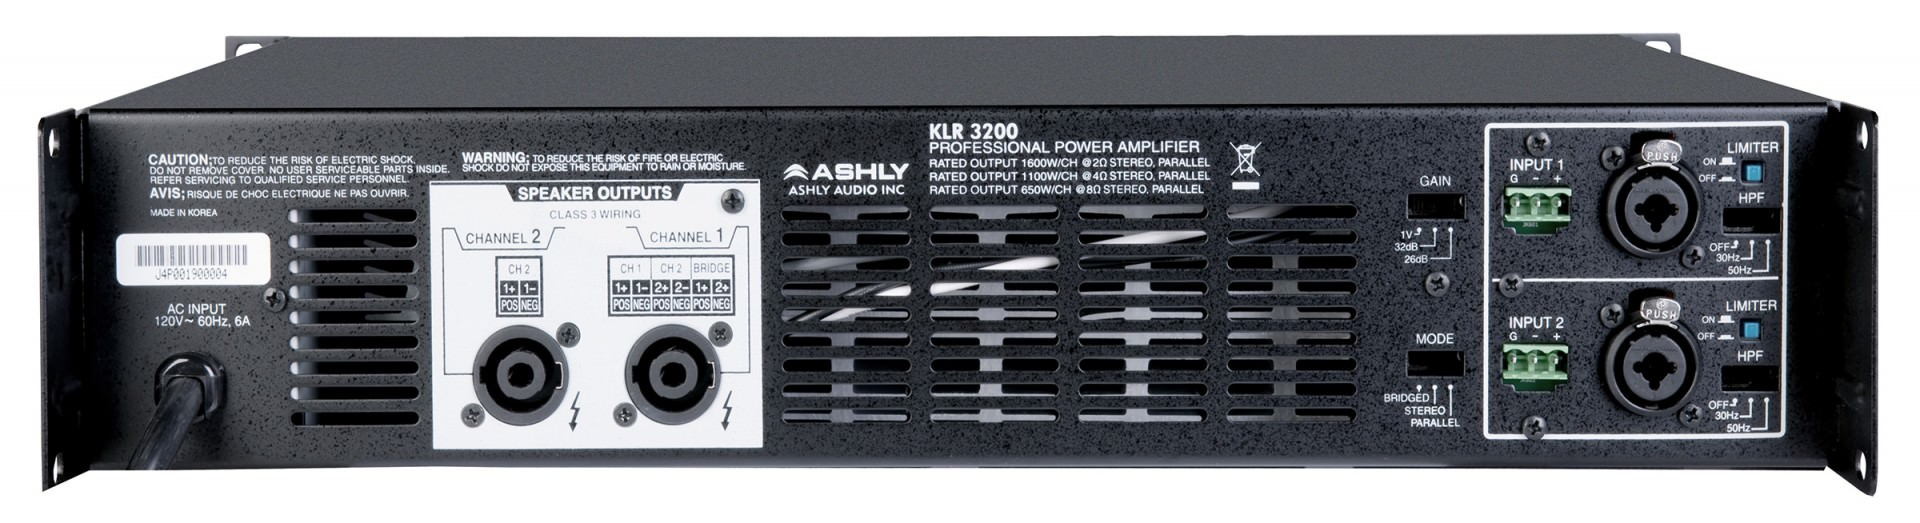 Klr High Performance Amplifiers Ashly Audio 70v Speaker With Volume Control Wiring Diagram Free Download Power Ratings